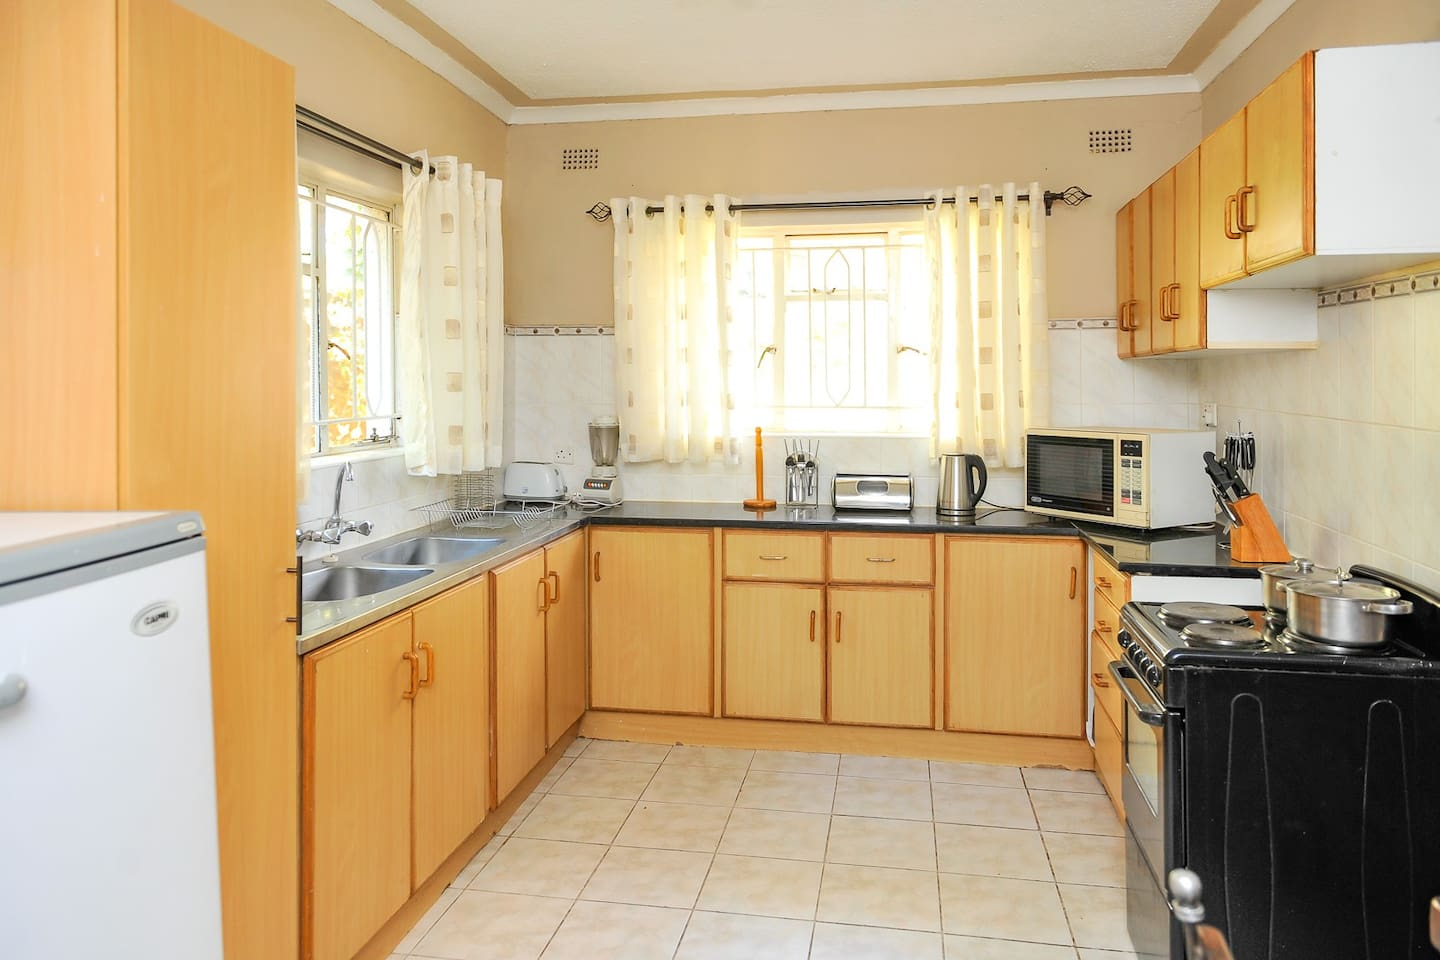 Fully furnished and equipped kitchen